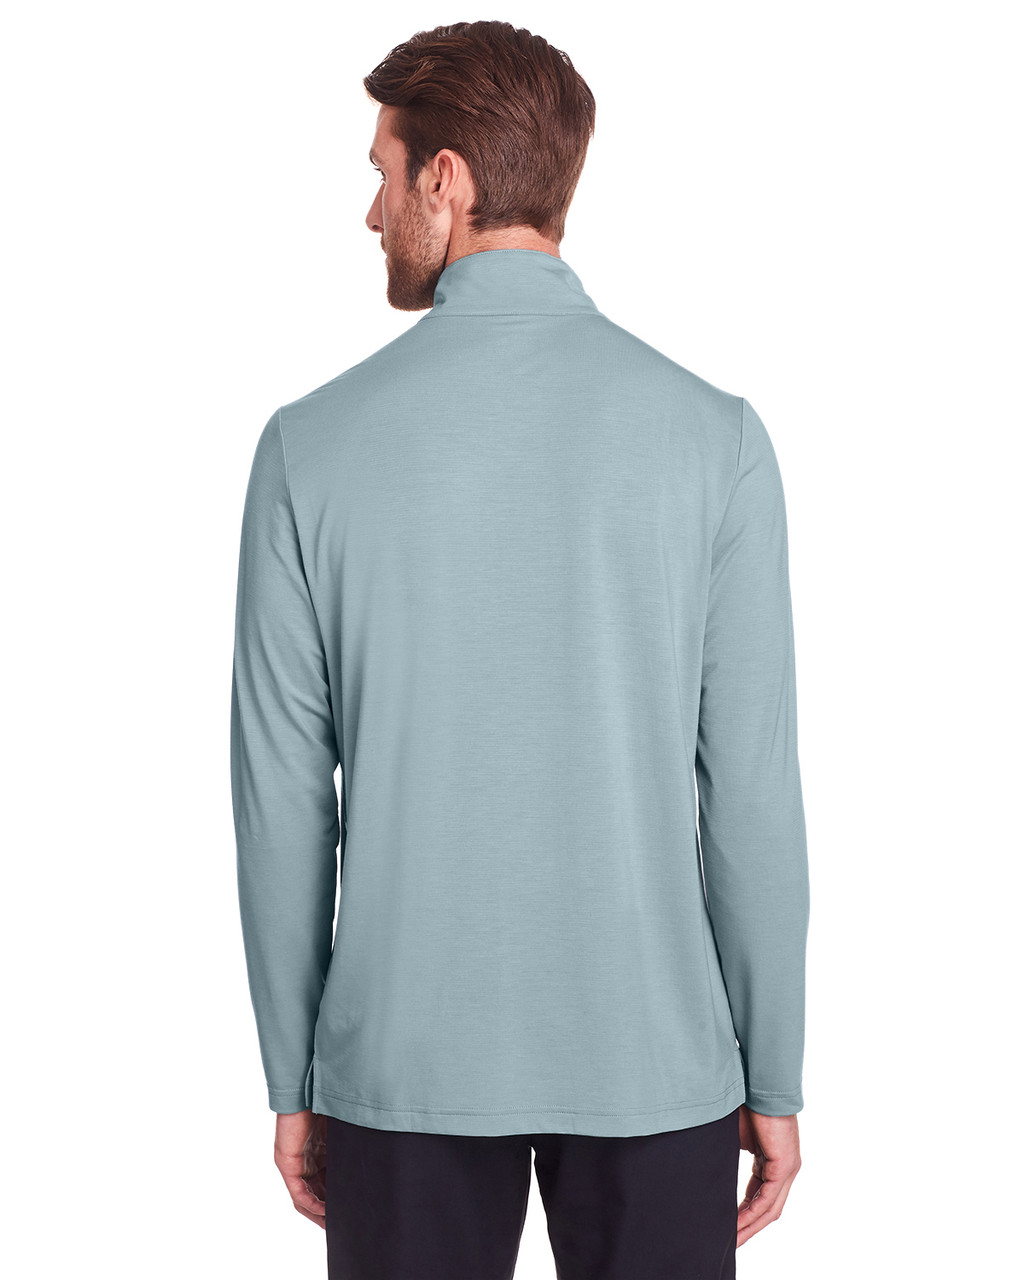 Opal Blue - Back, NE400 North End Men's Jaq Snap-Up Stretch Performance Pullover Long Sleeve Shirt | BlankClothing.ca